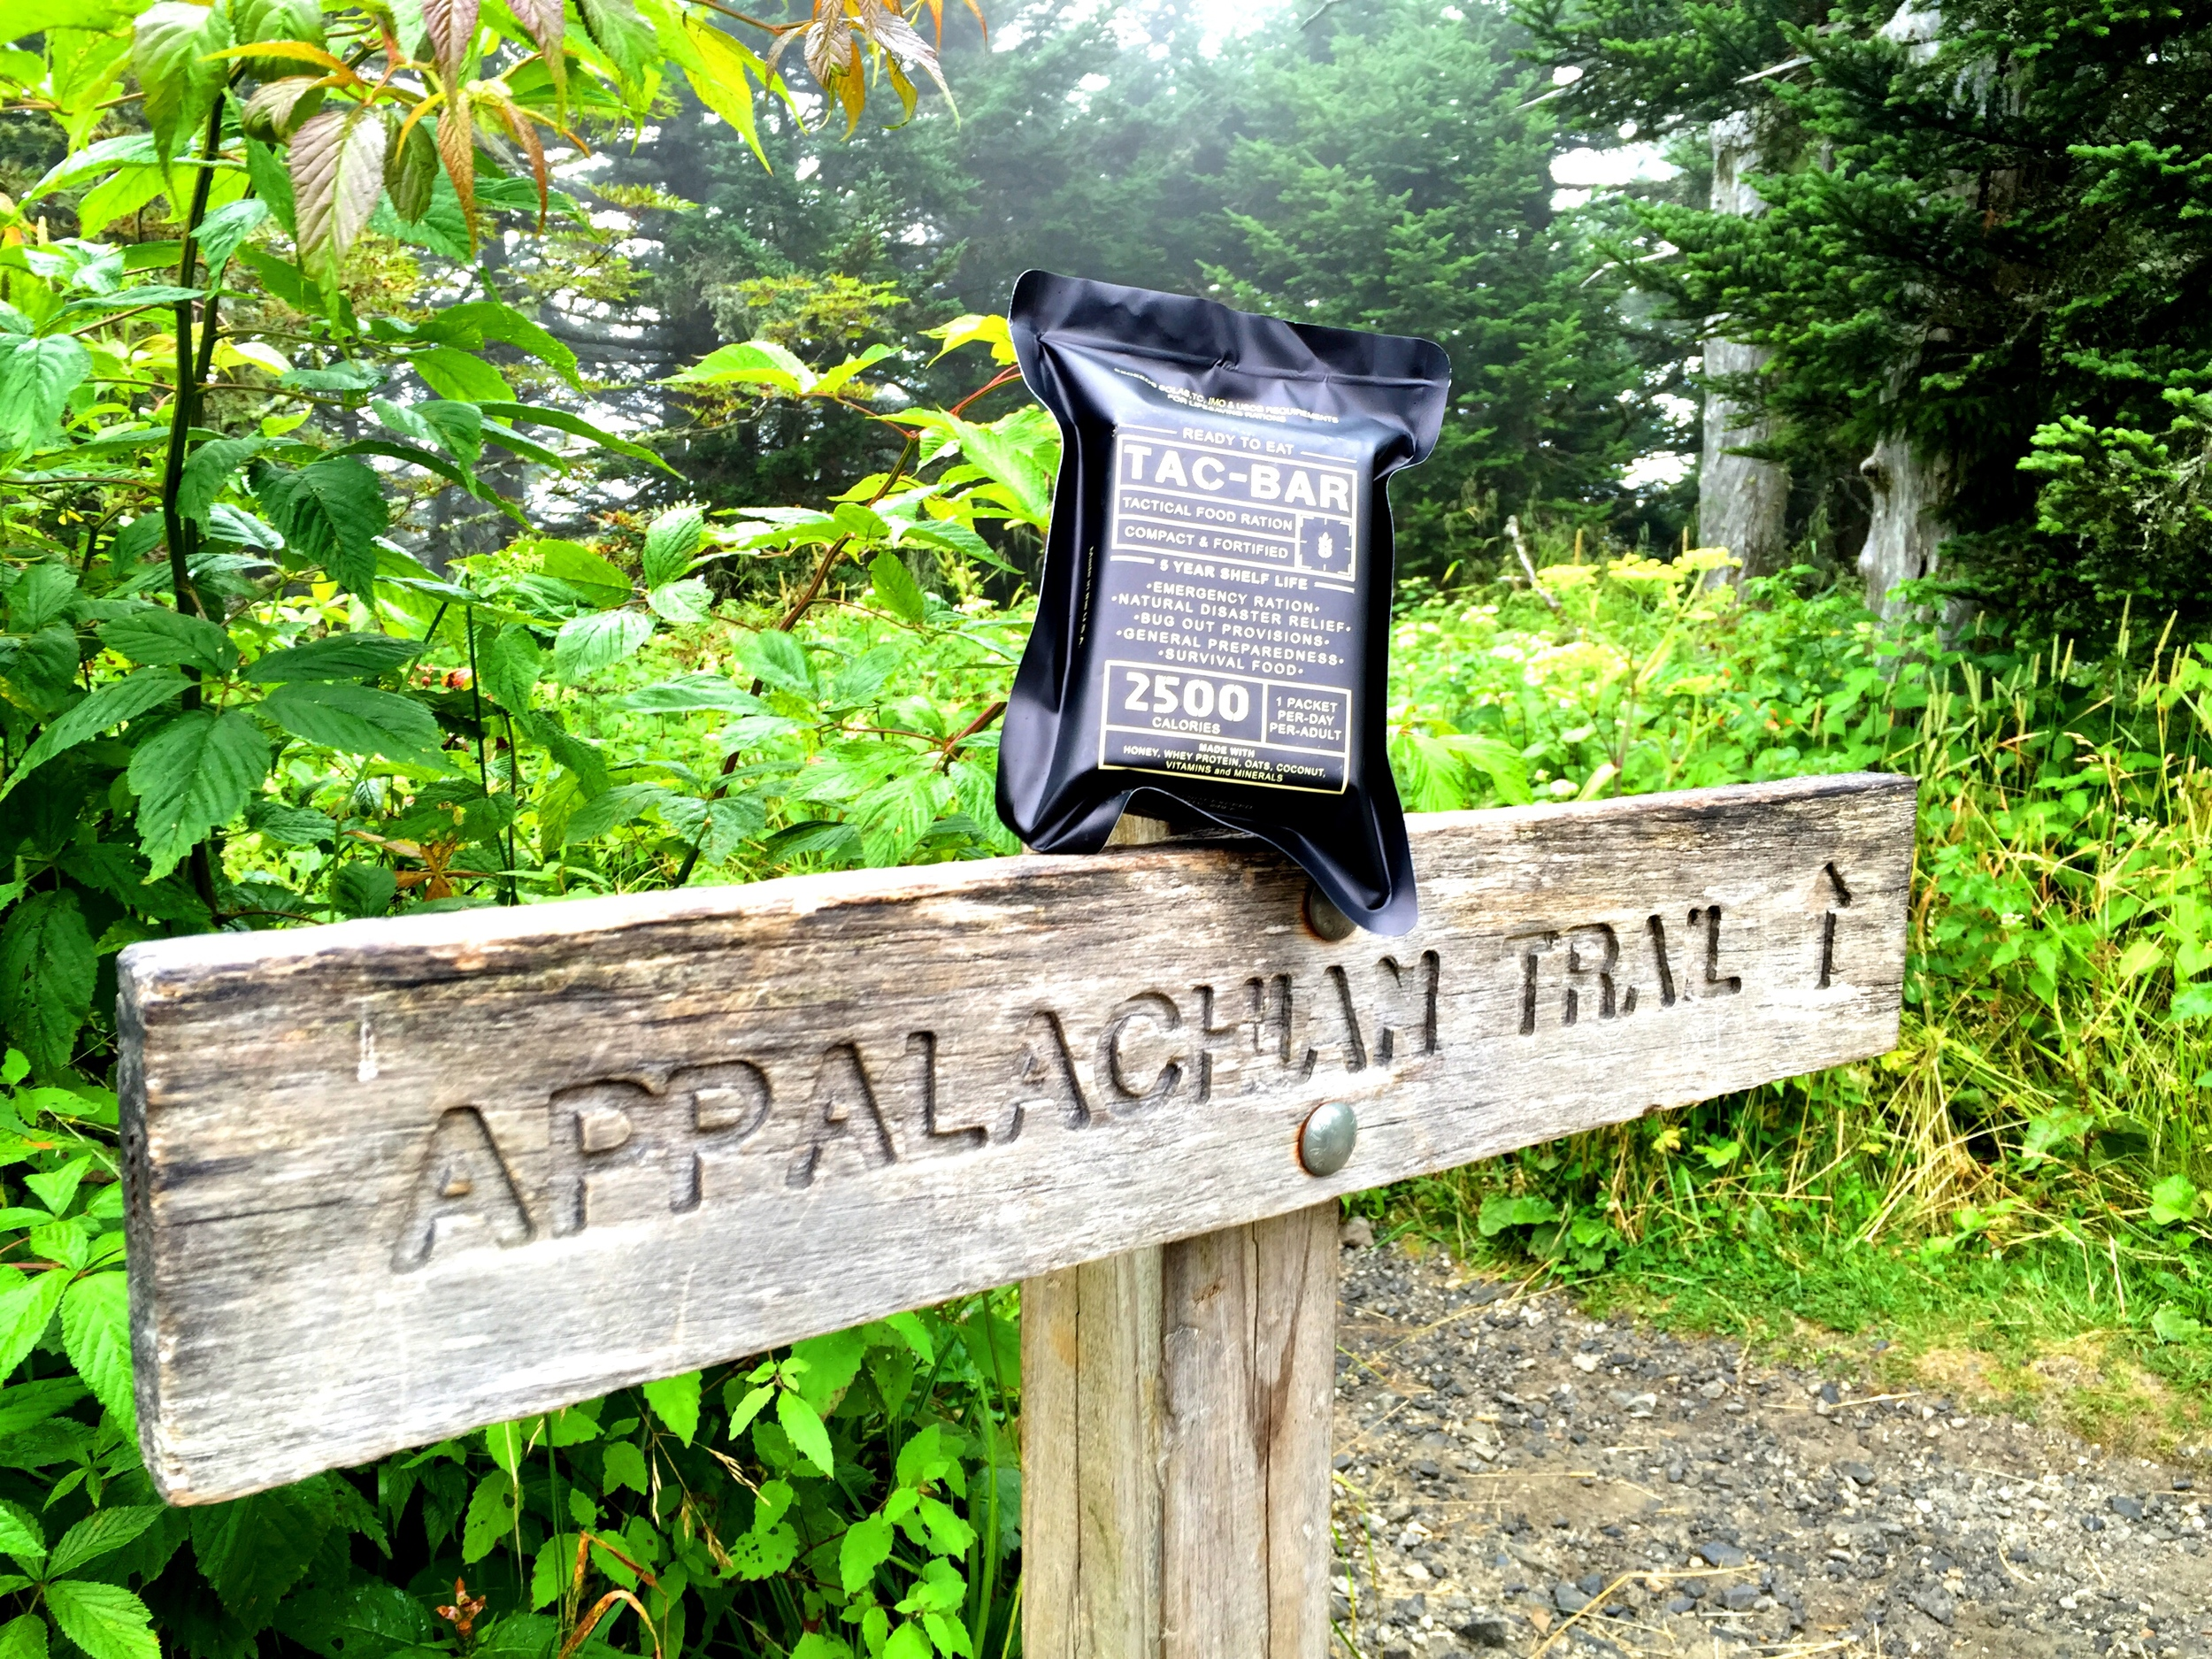 While section hiking the AT in the Summer of 2015, we polished our formula for vitamins and minerals, not just calories.